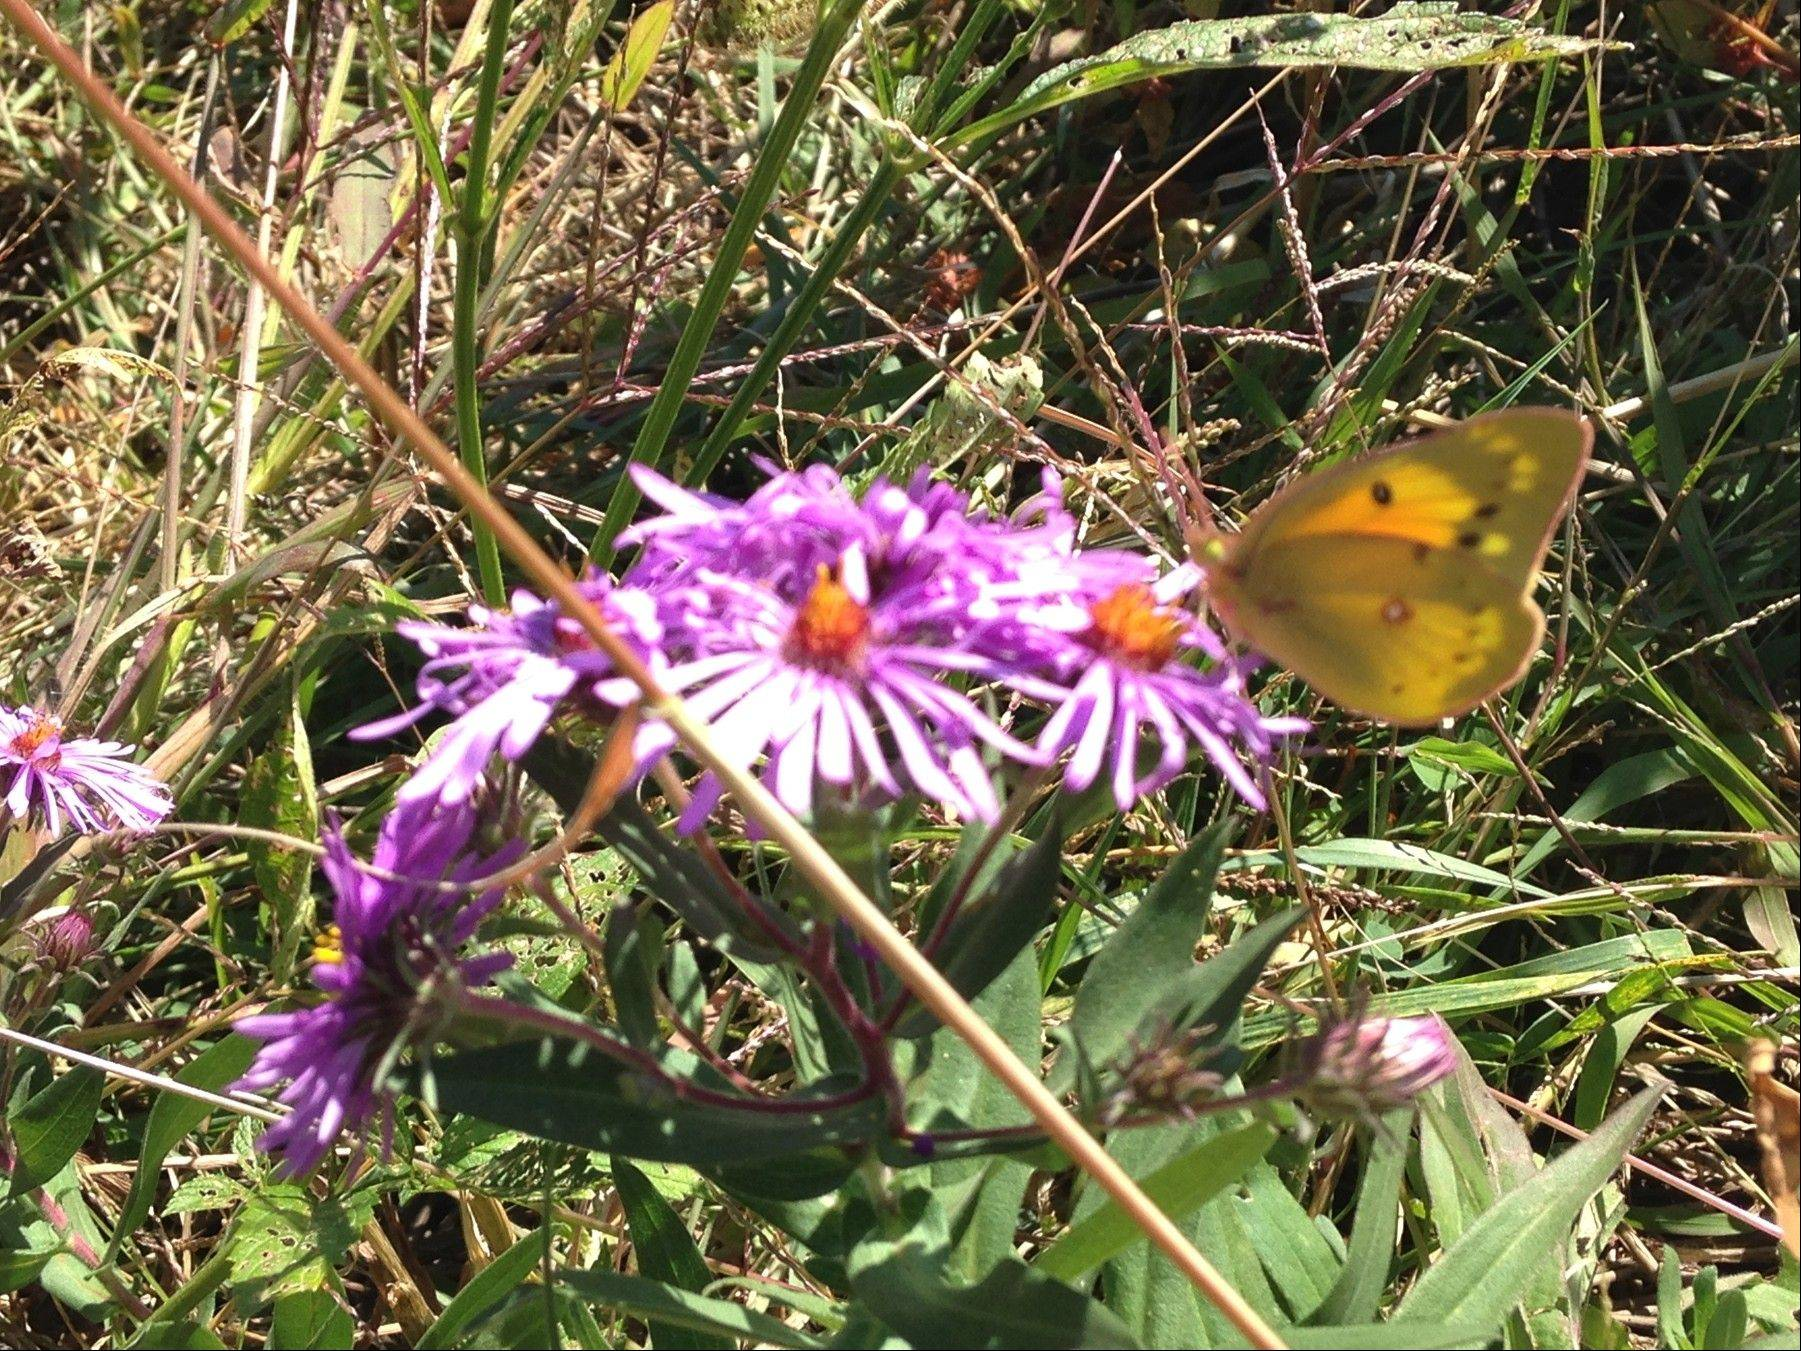 A butterfly gathers nectar from a New England aster, one of many native plants Fox Valley Park District crews and volunteers utilize in prairie restoration efforts throughout the district to expand natural areas, ecosystems and wildlife habitat.